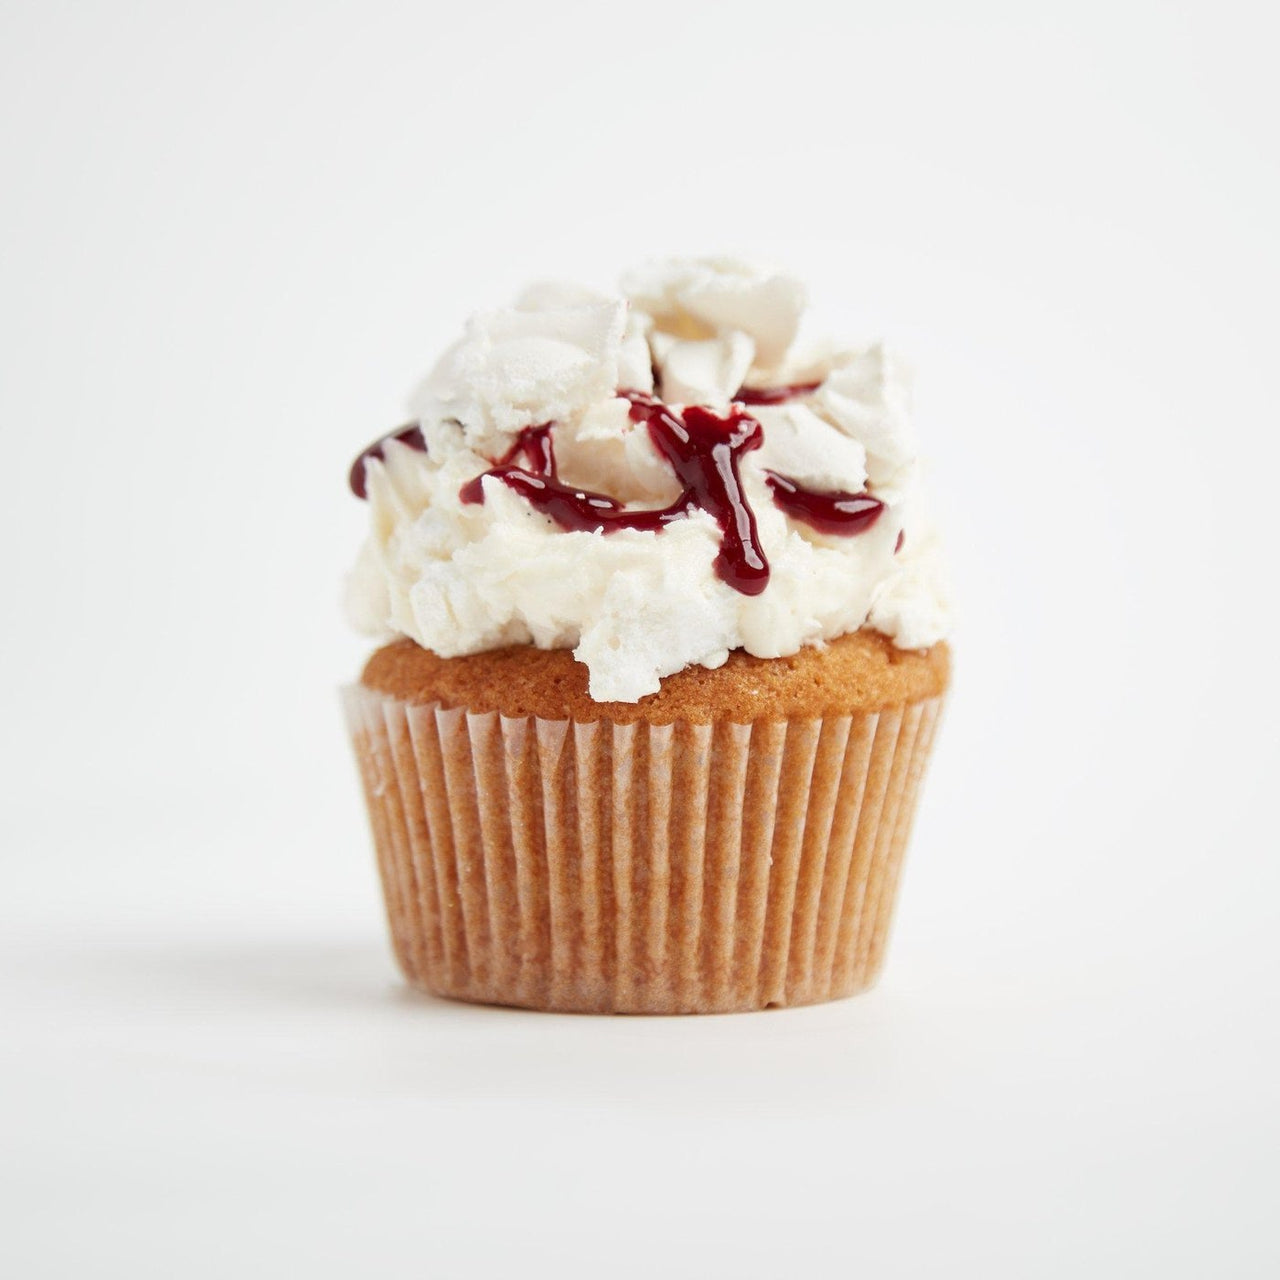 Eton Mess Cupcakes by Crumbs & Doilies